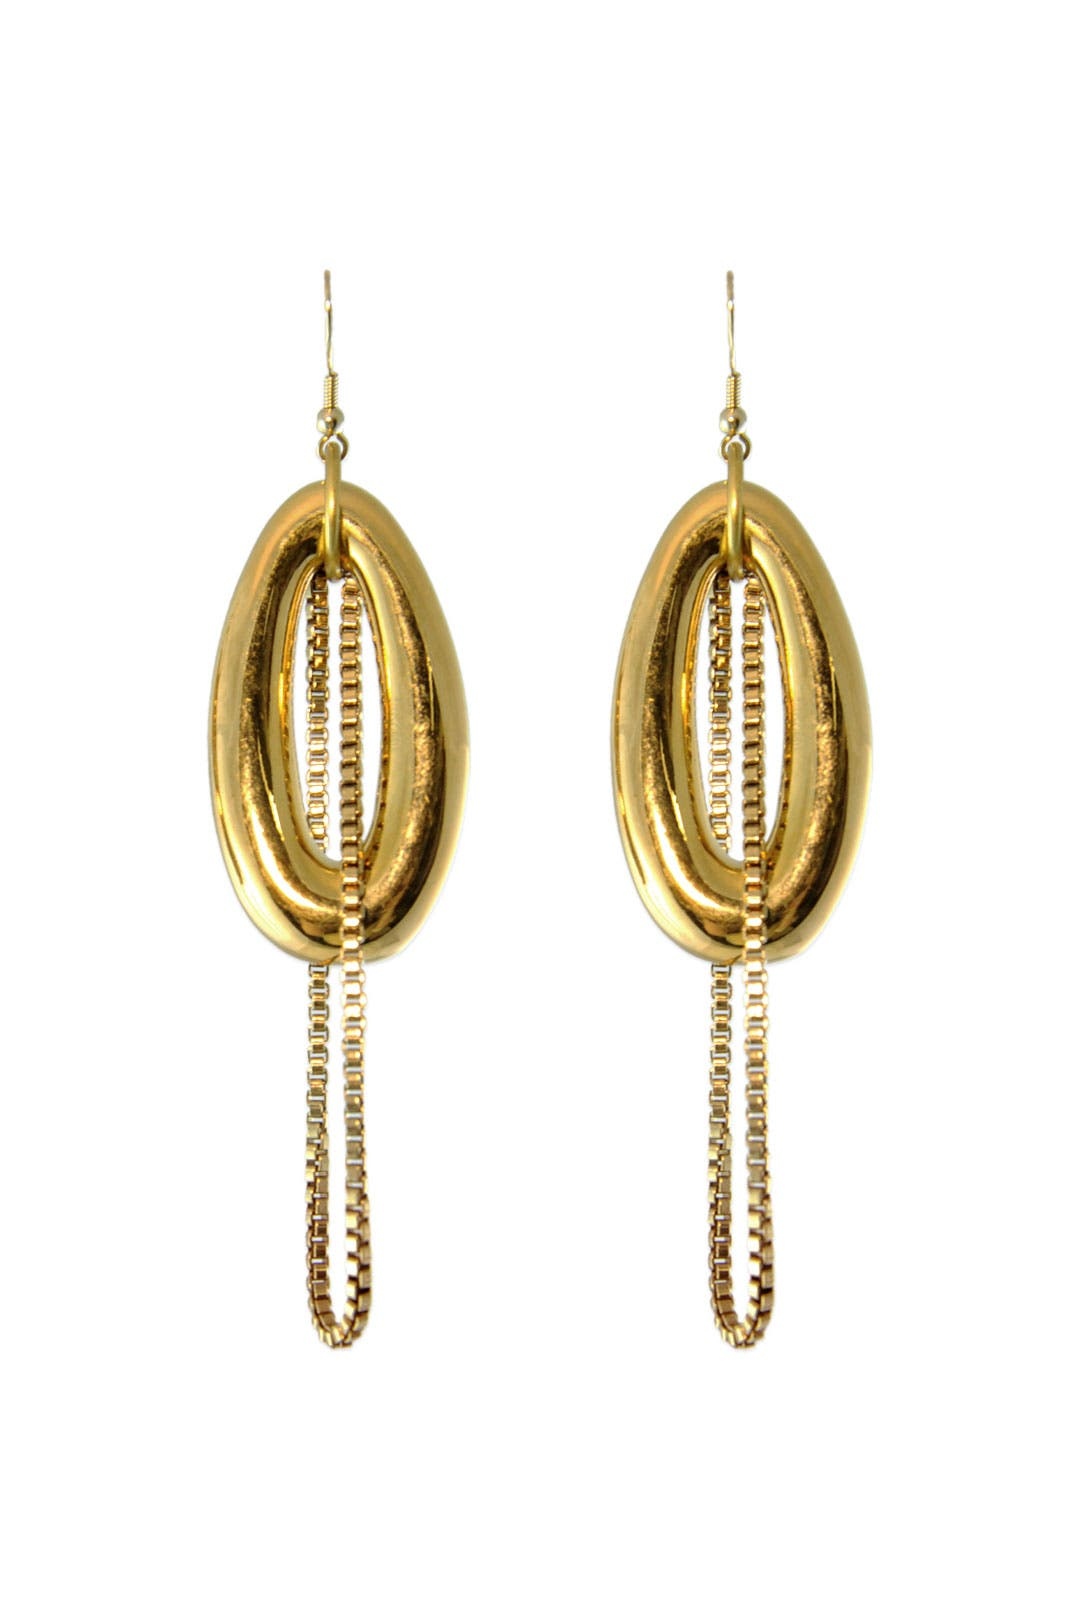 Arcadian Chain Earrings by Nicole Romano